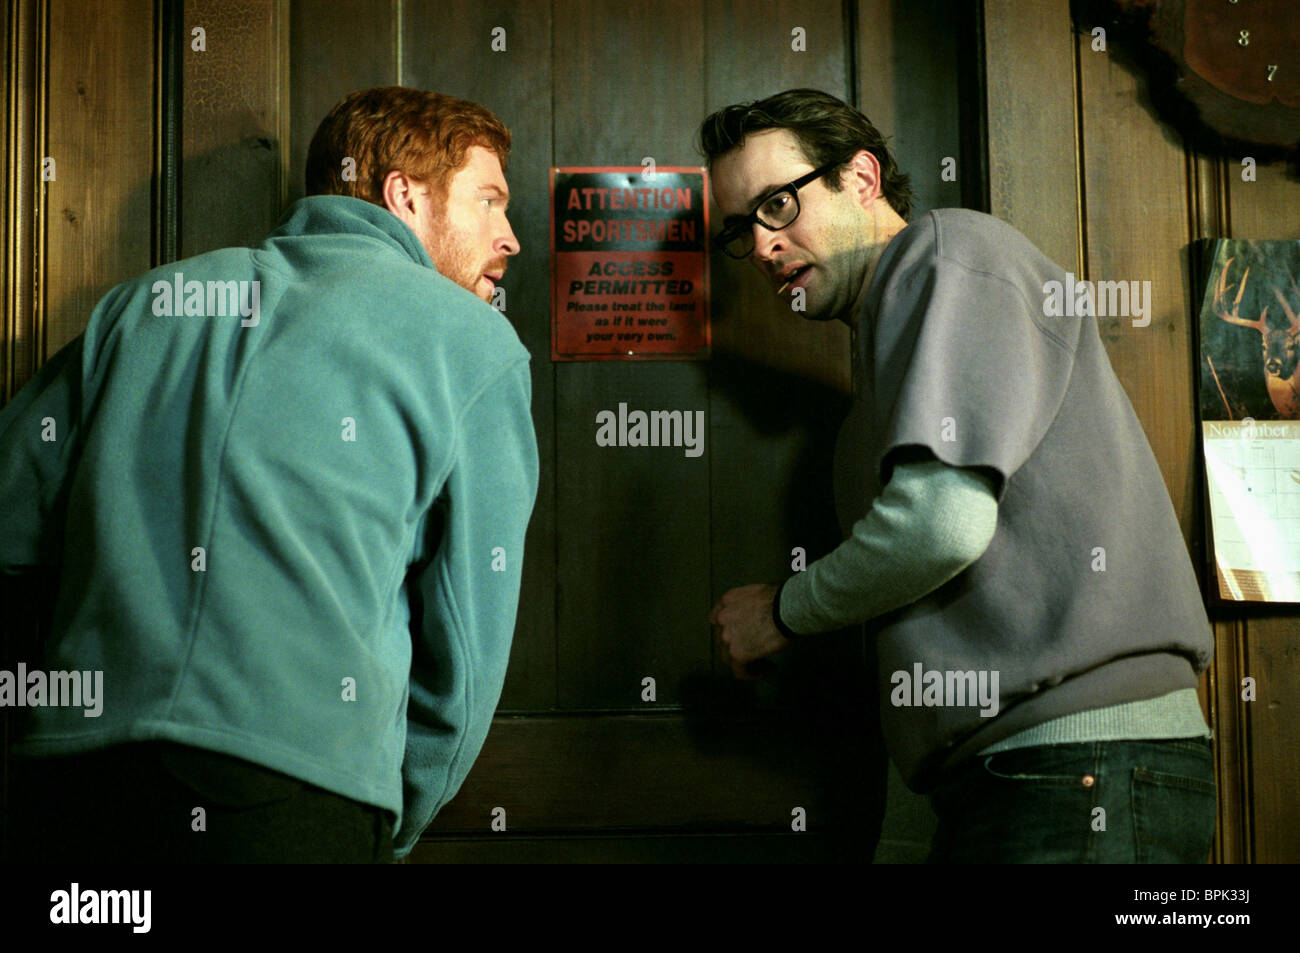 DAMIAN LEWIS & JASON LEE DREAMCATCHER (2003) - Stock Image